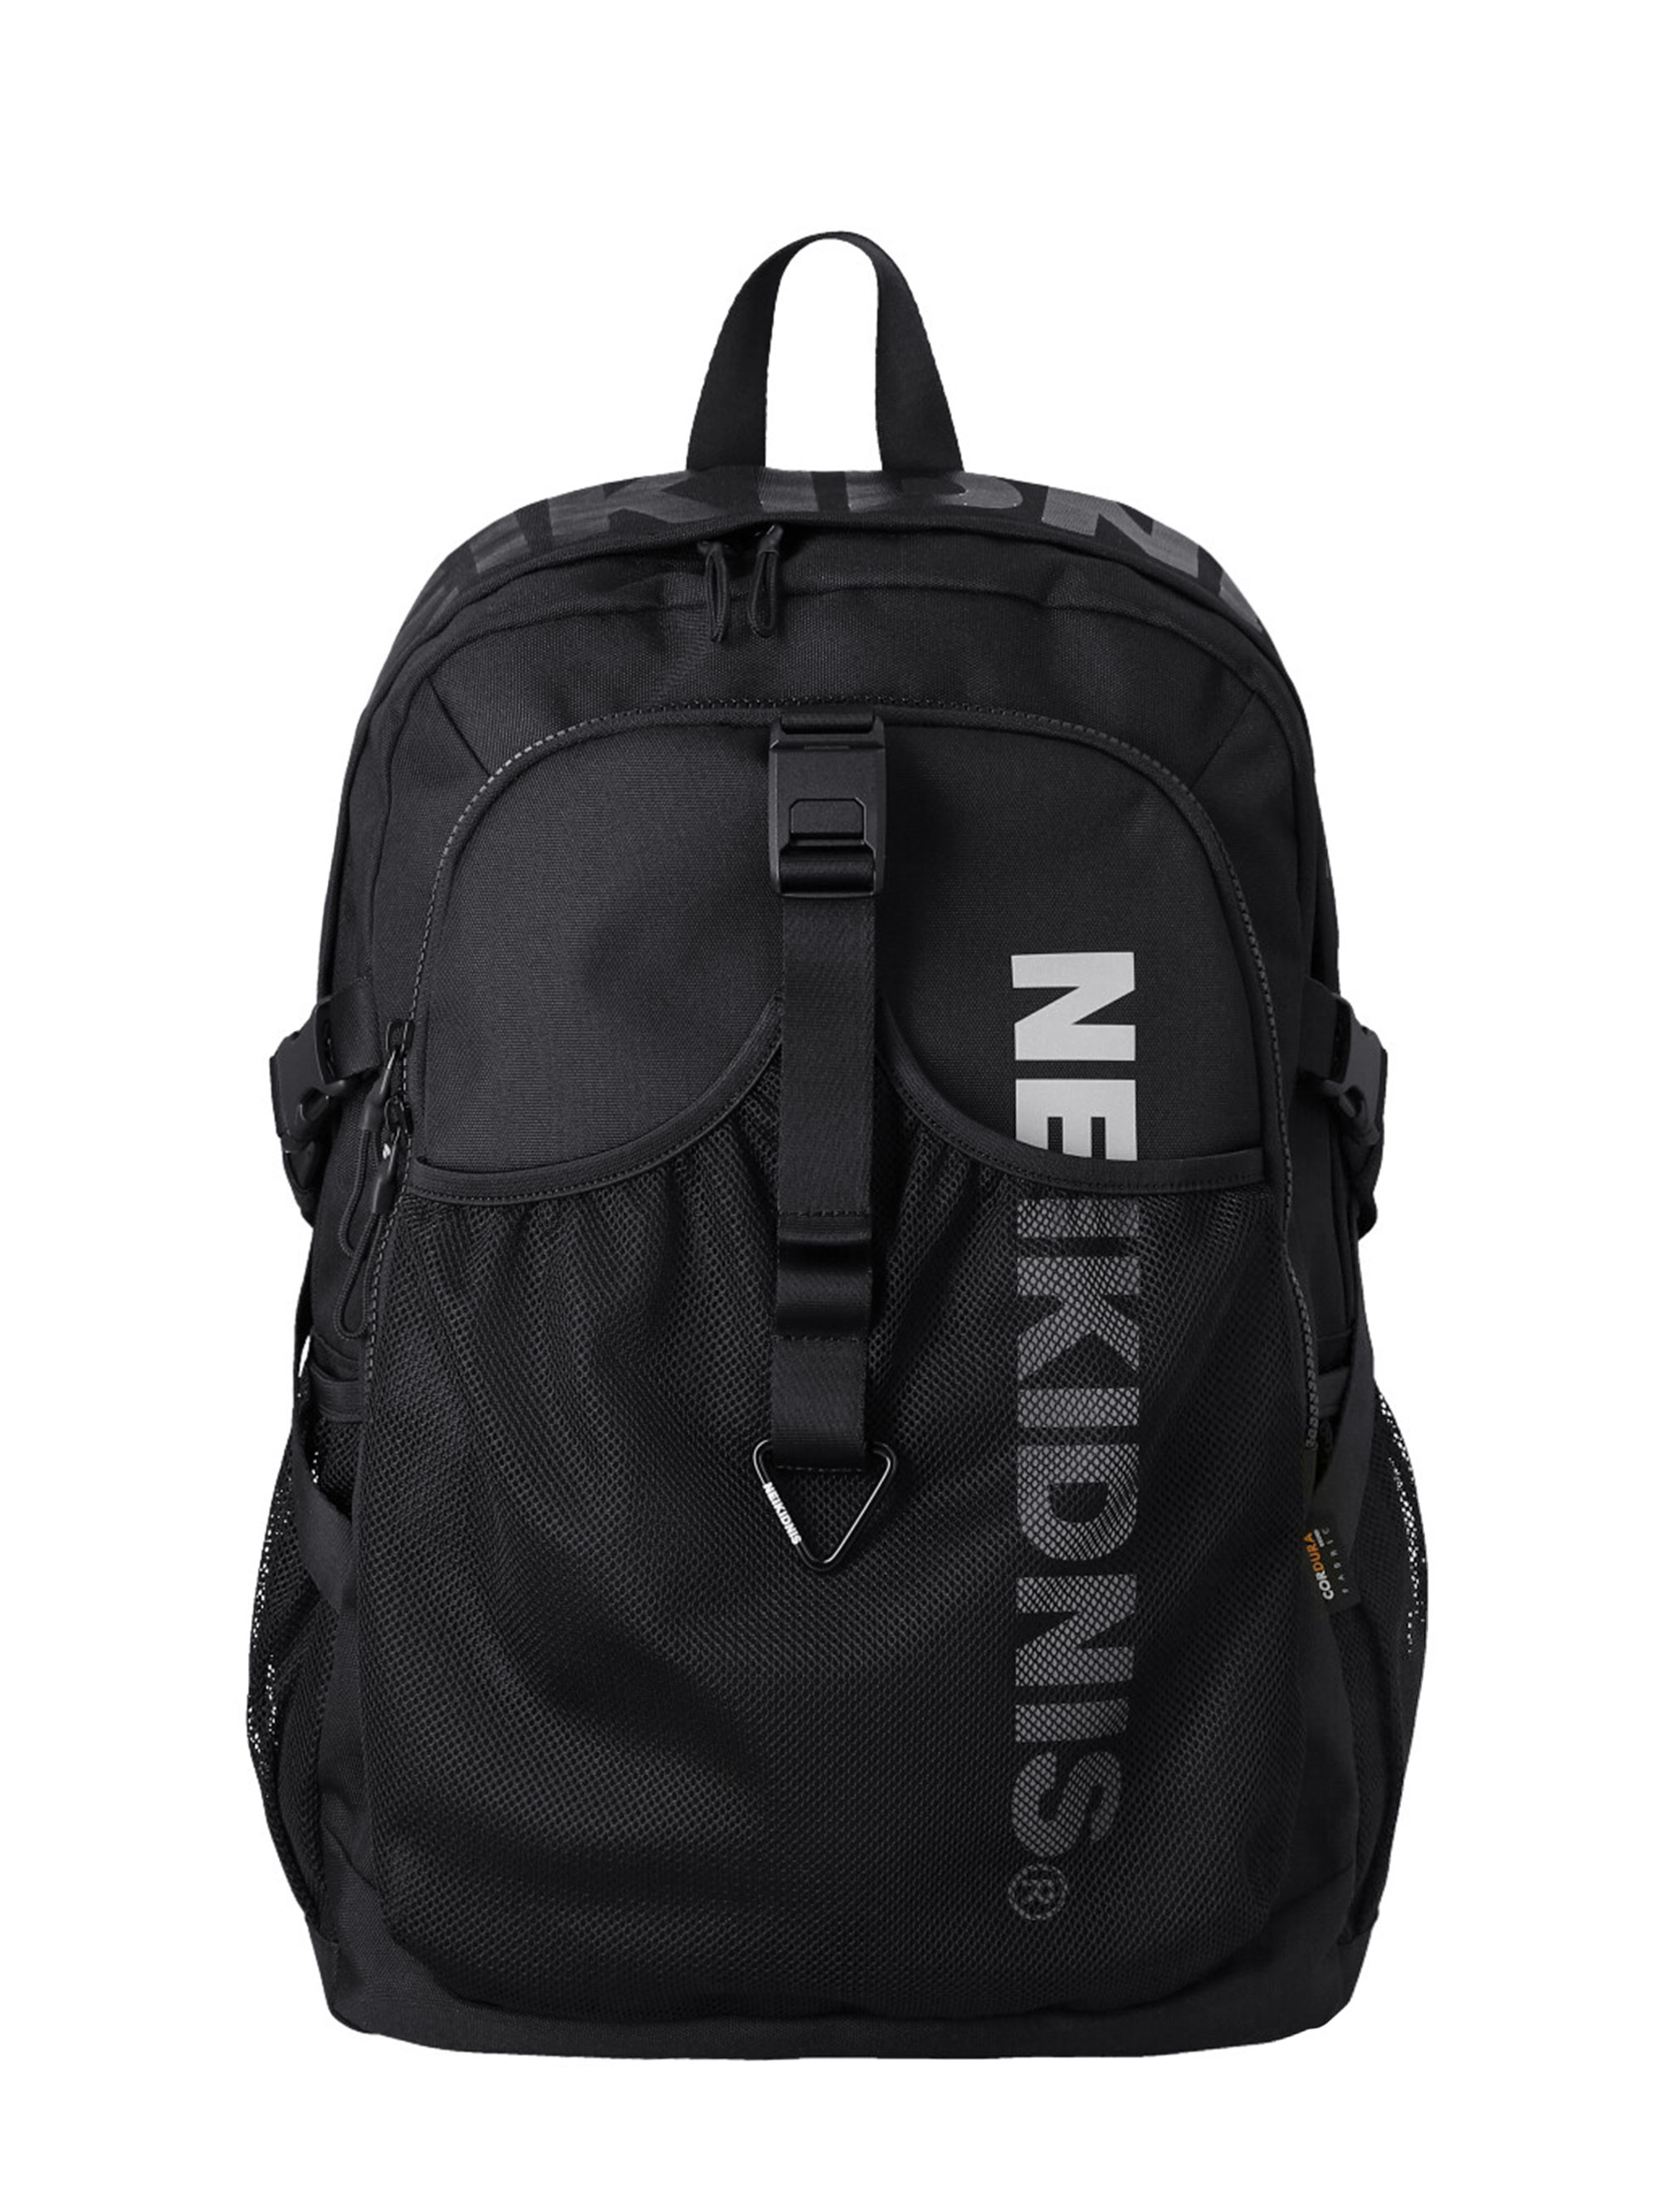 DERBY BACKPACK / BLACK